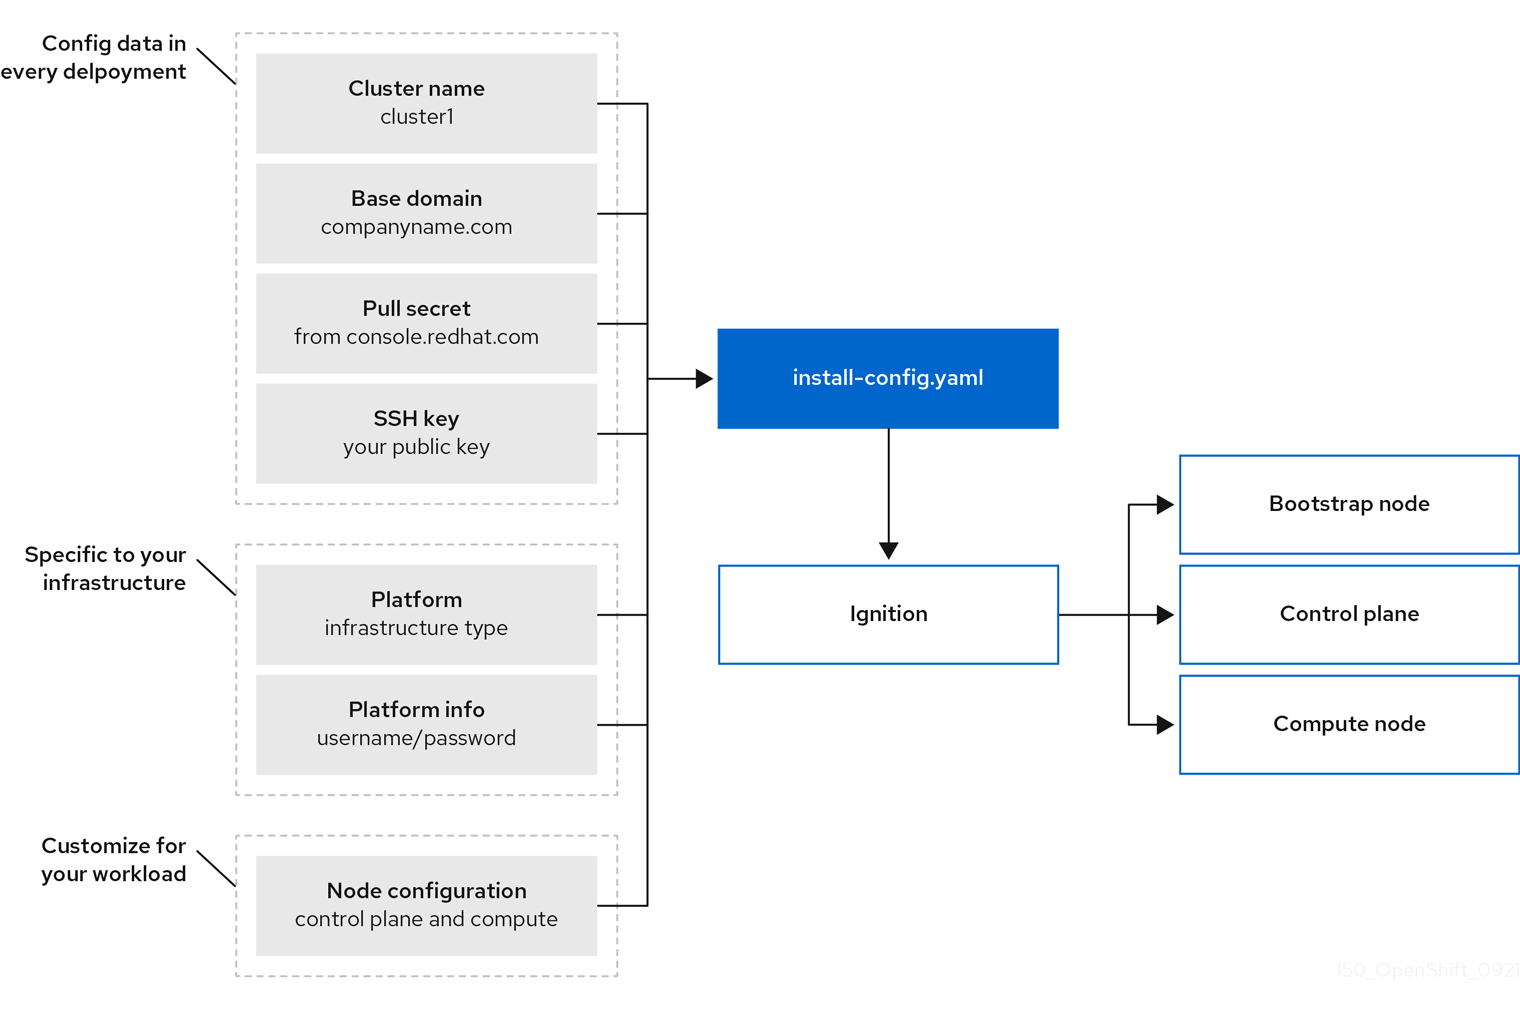 OpenShift Container Platform installation targets and dependencies